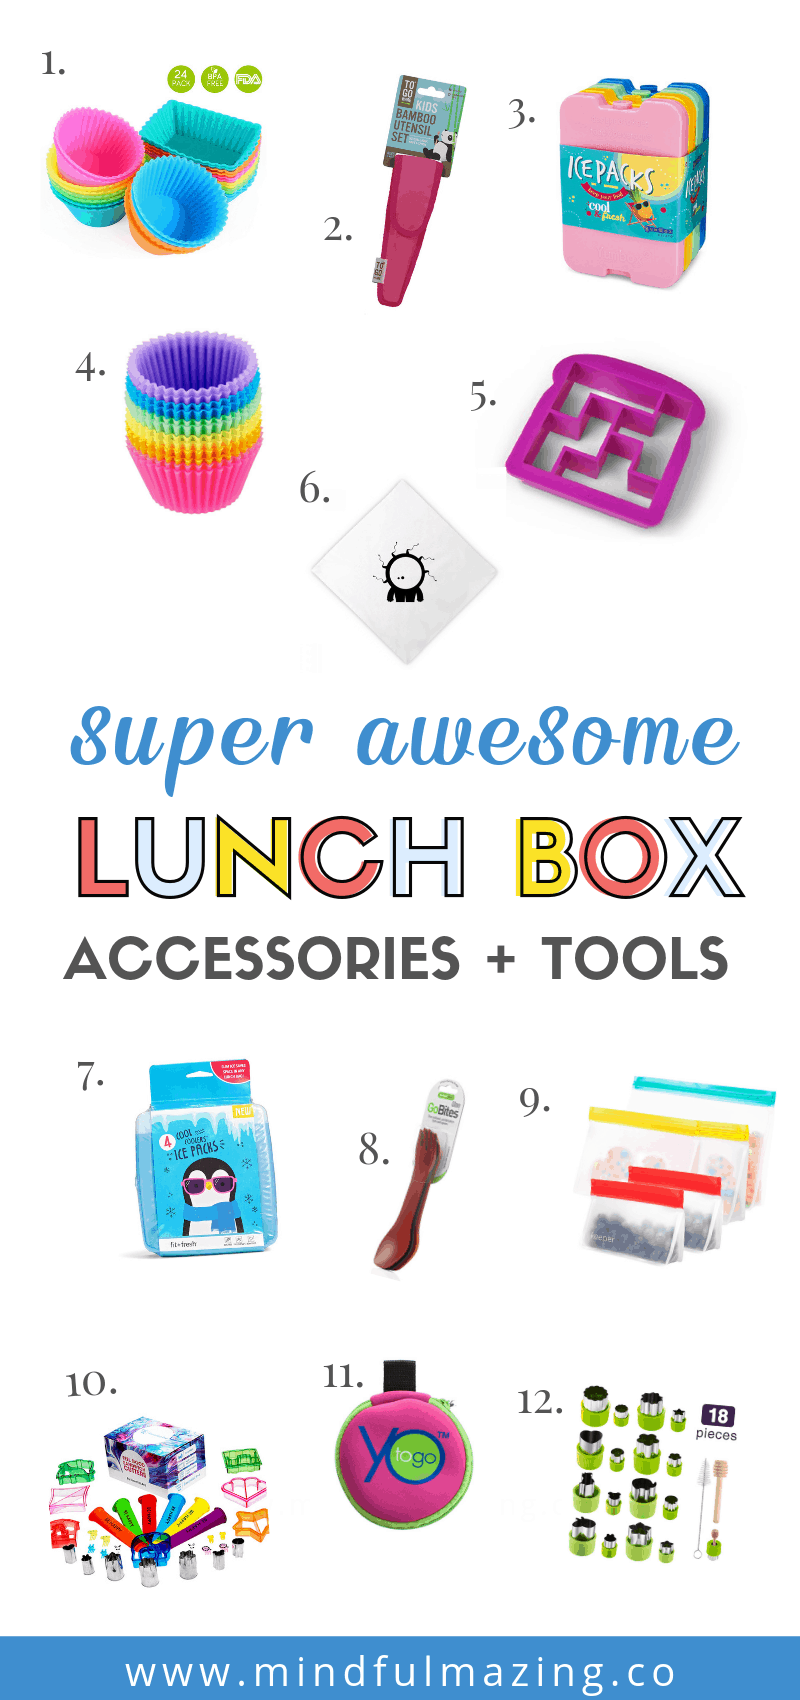 The best lunch boxes for kids, supplies and tools to pack a fun and exciting school lunch that kids will love. You never have to feel confused or worry about what lunch box to buy your kids again. The best of the best when it comes to kids lunch boxes, lunch box supplies and lunch box accessories! The best bento boxes, water bottles, utensils and fun lunch packing tools! Awesome ideas to make lunches super cool.